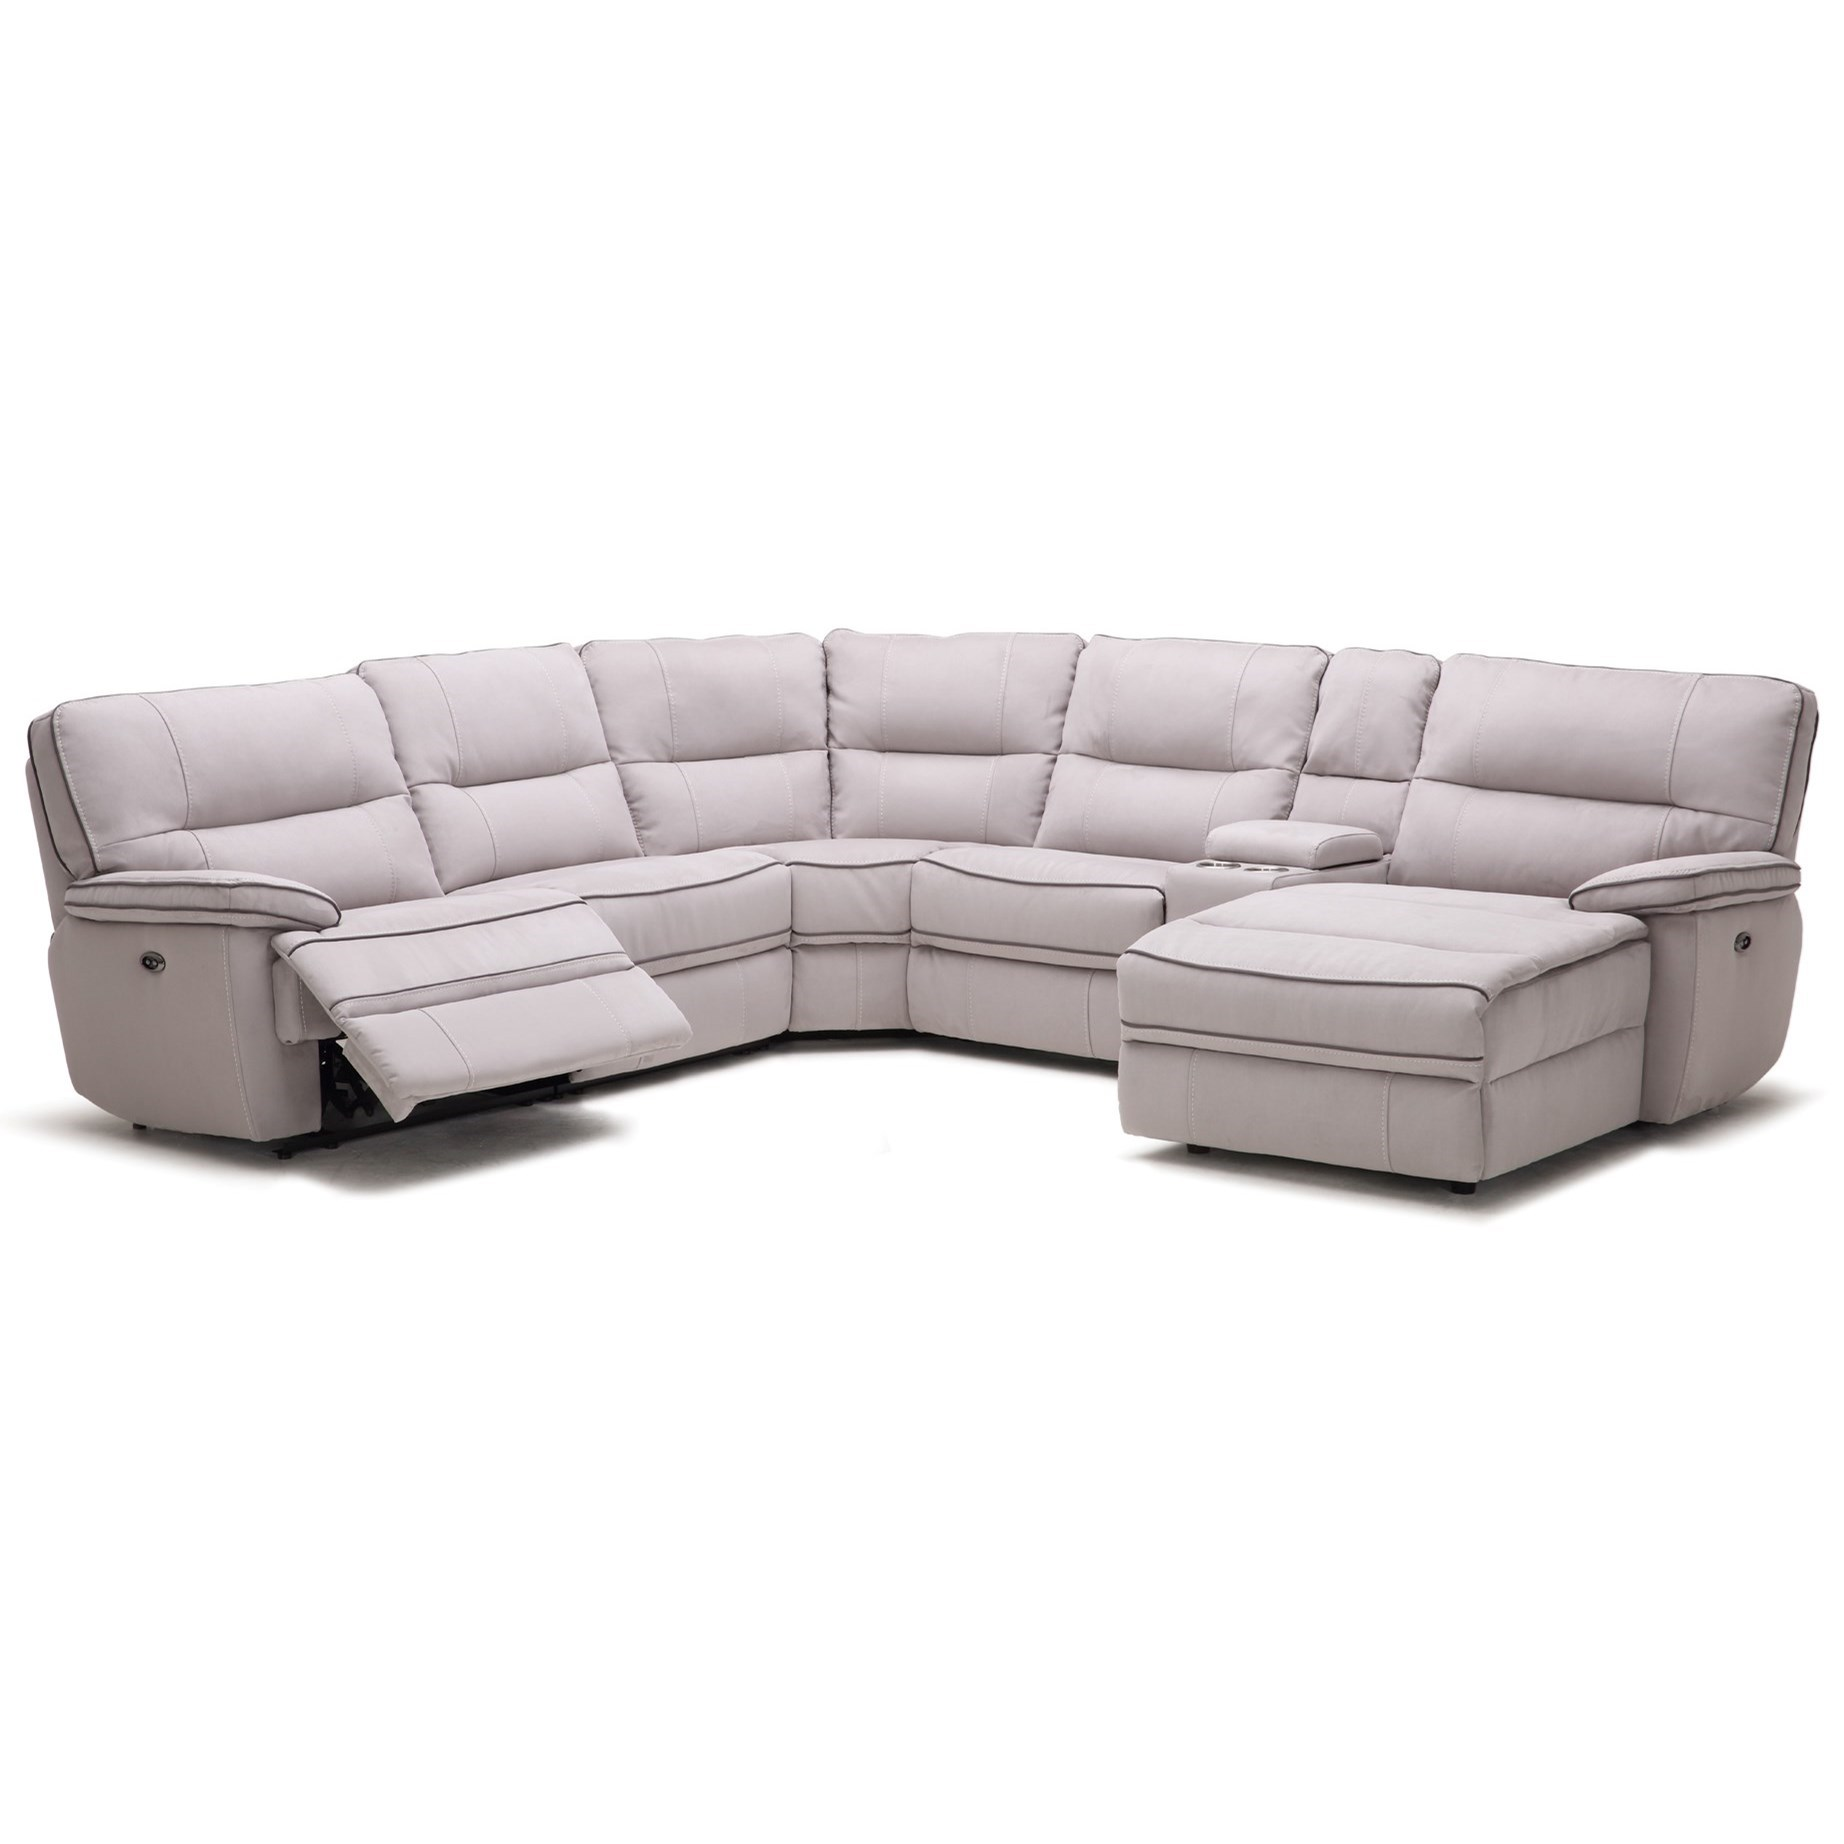 Kuka Home KM019 Six Piece Reclining Sectional Sofa with Cupholder ...